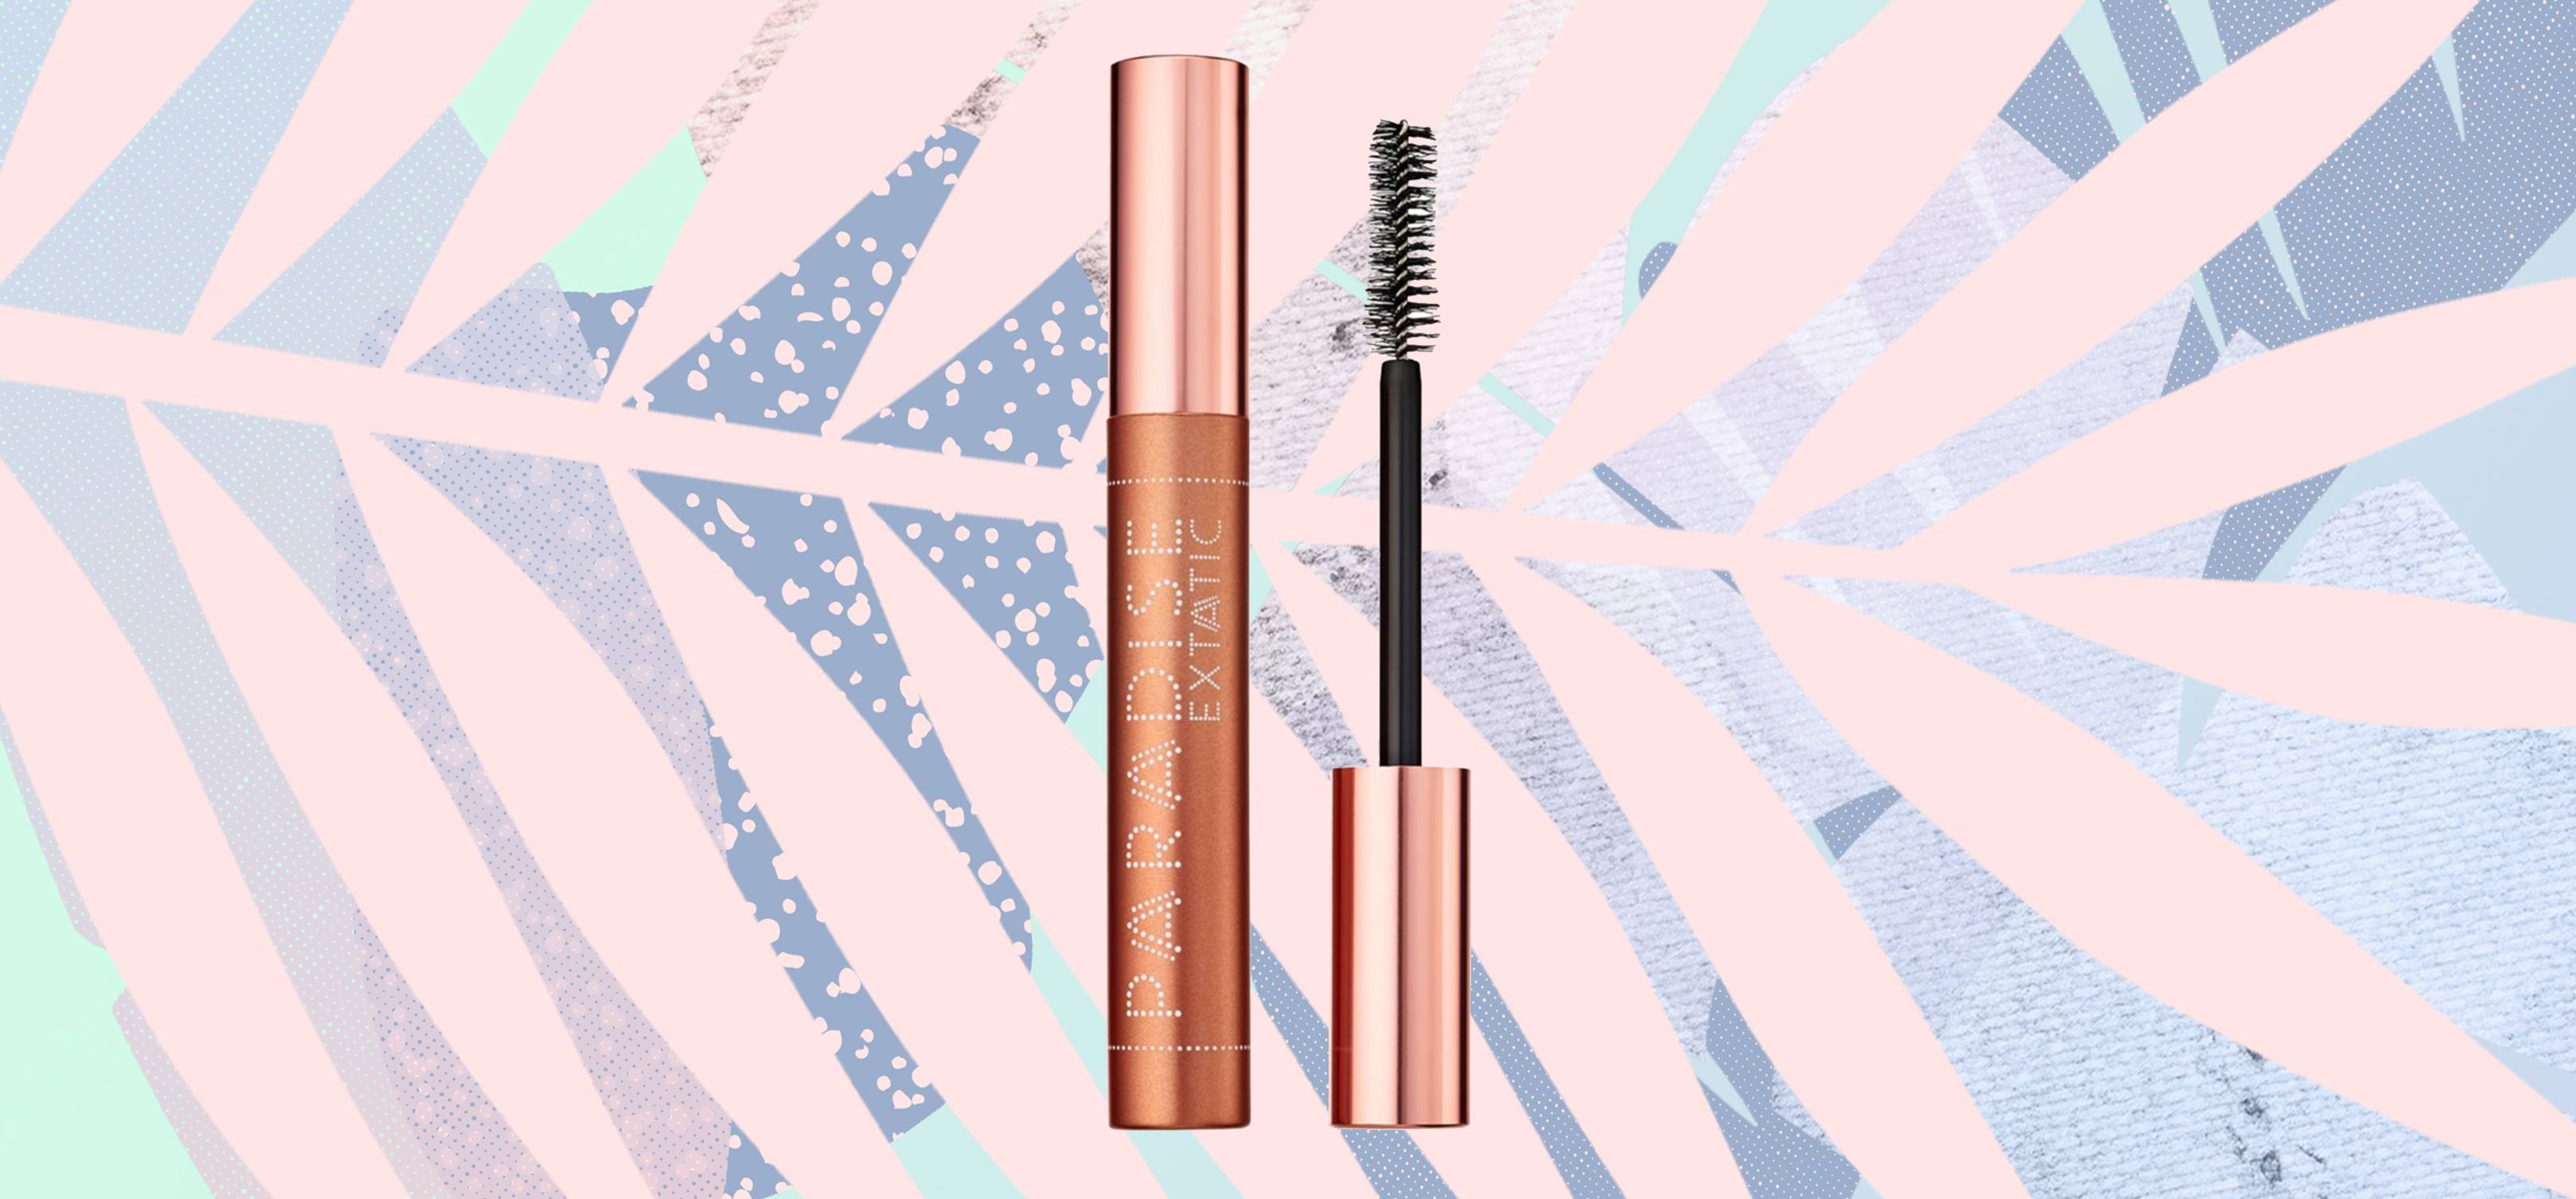 203b87a57a9 L'Oréal Paris Paradise Mascara Is Flying Off Shelves And Here's Why |  Glamour UK